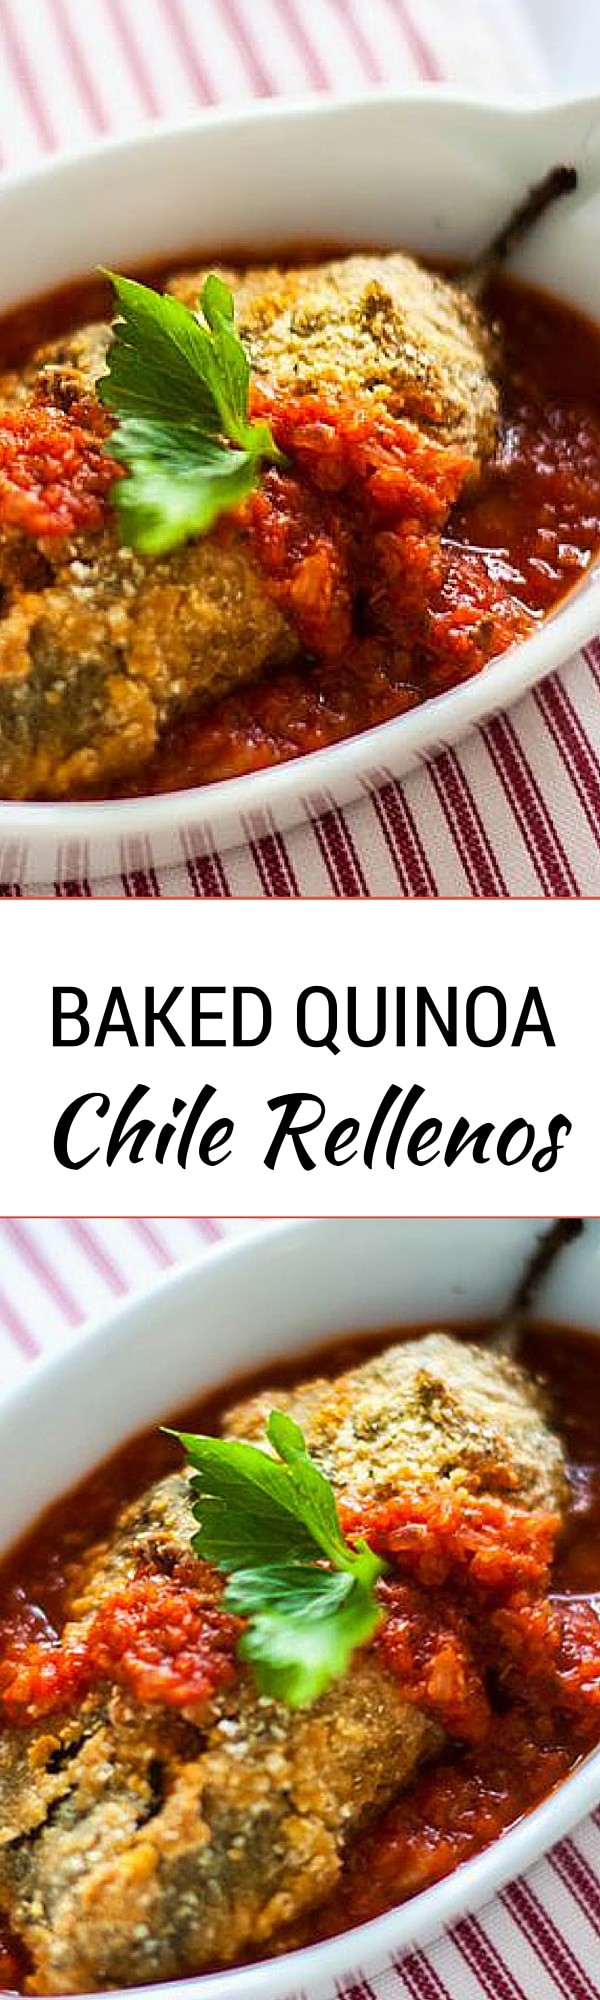 Baked Quinoa Chile Rellenos - It is hard to believe these Baked Quinoa Chile Rellenos are both gluten free and can easily be made vegan. (I did!) A healthier alternative to a classic. - WendyPolisi.com